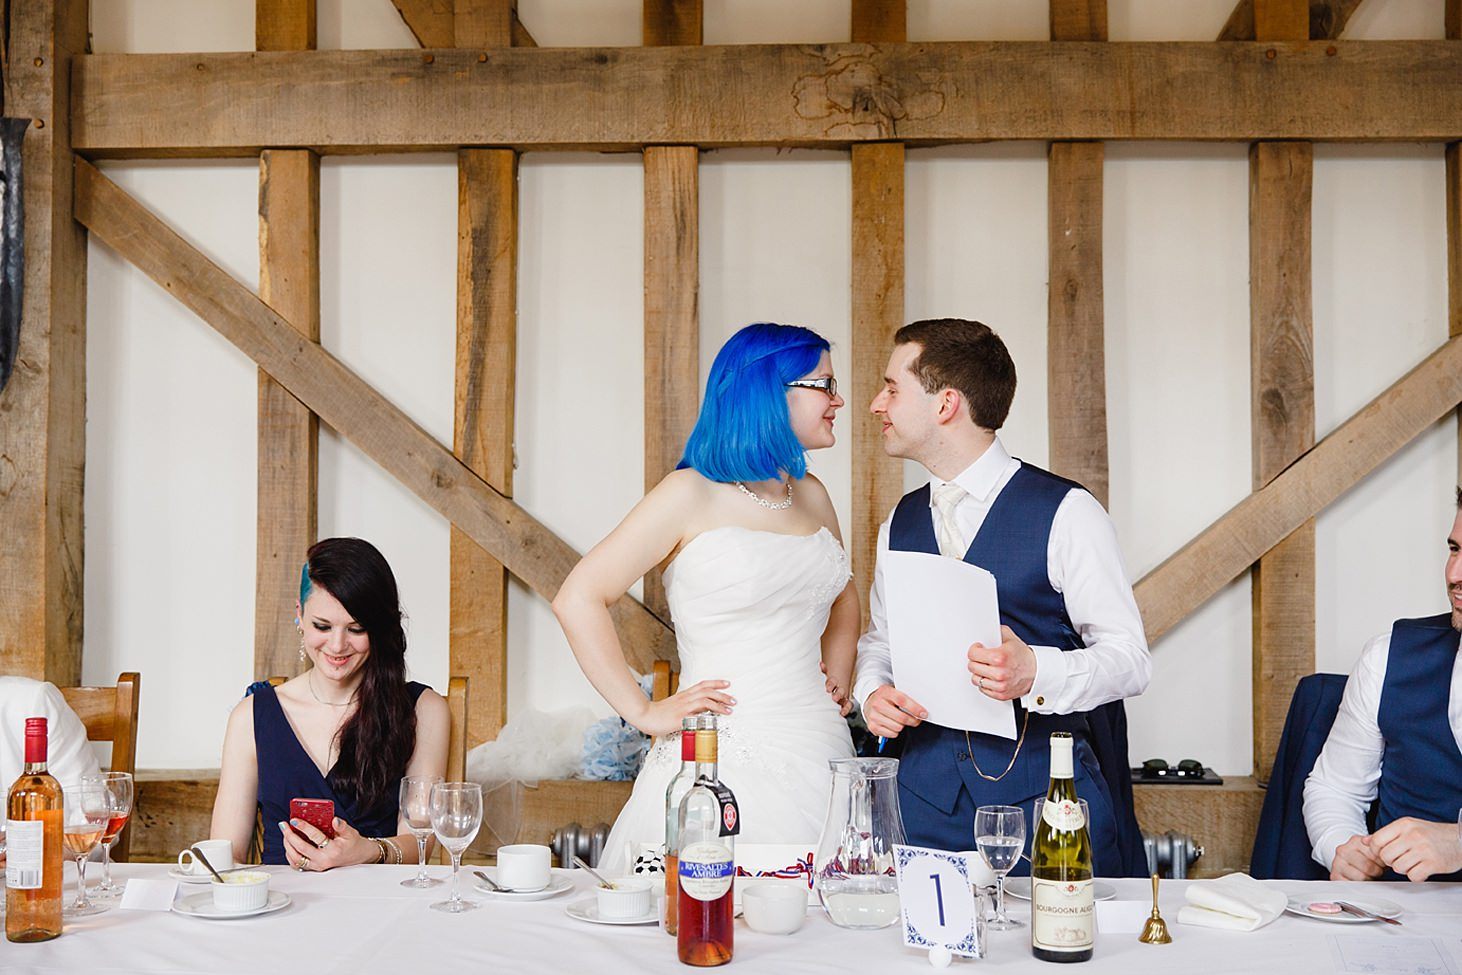 gate street barn wedding photography bride and groom smiling at each other